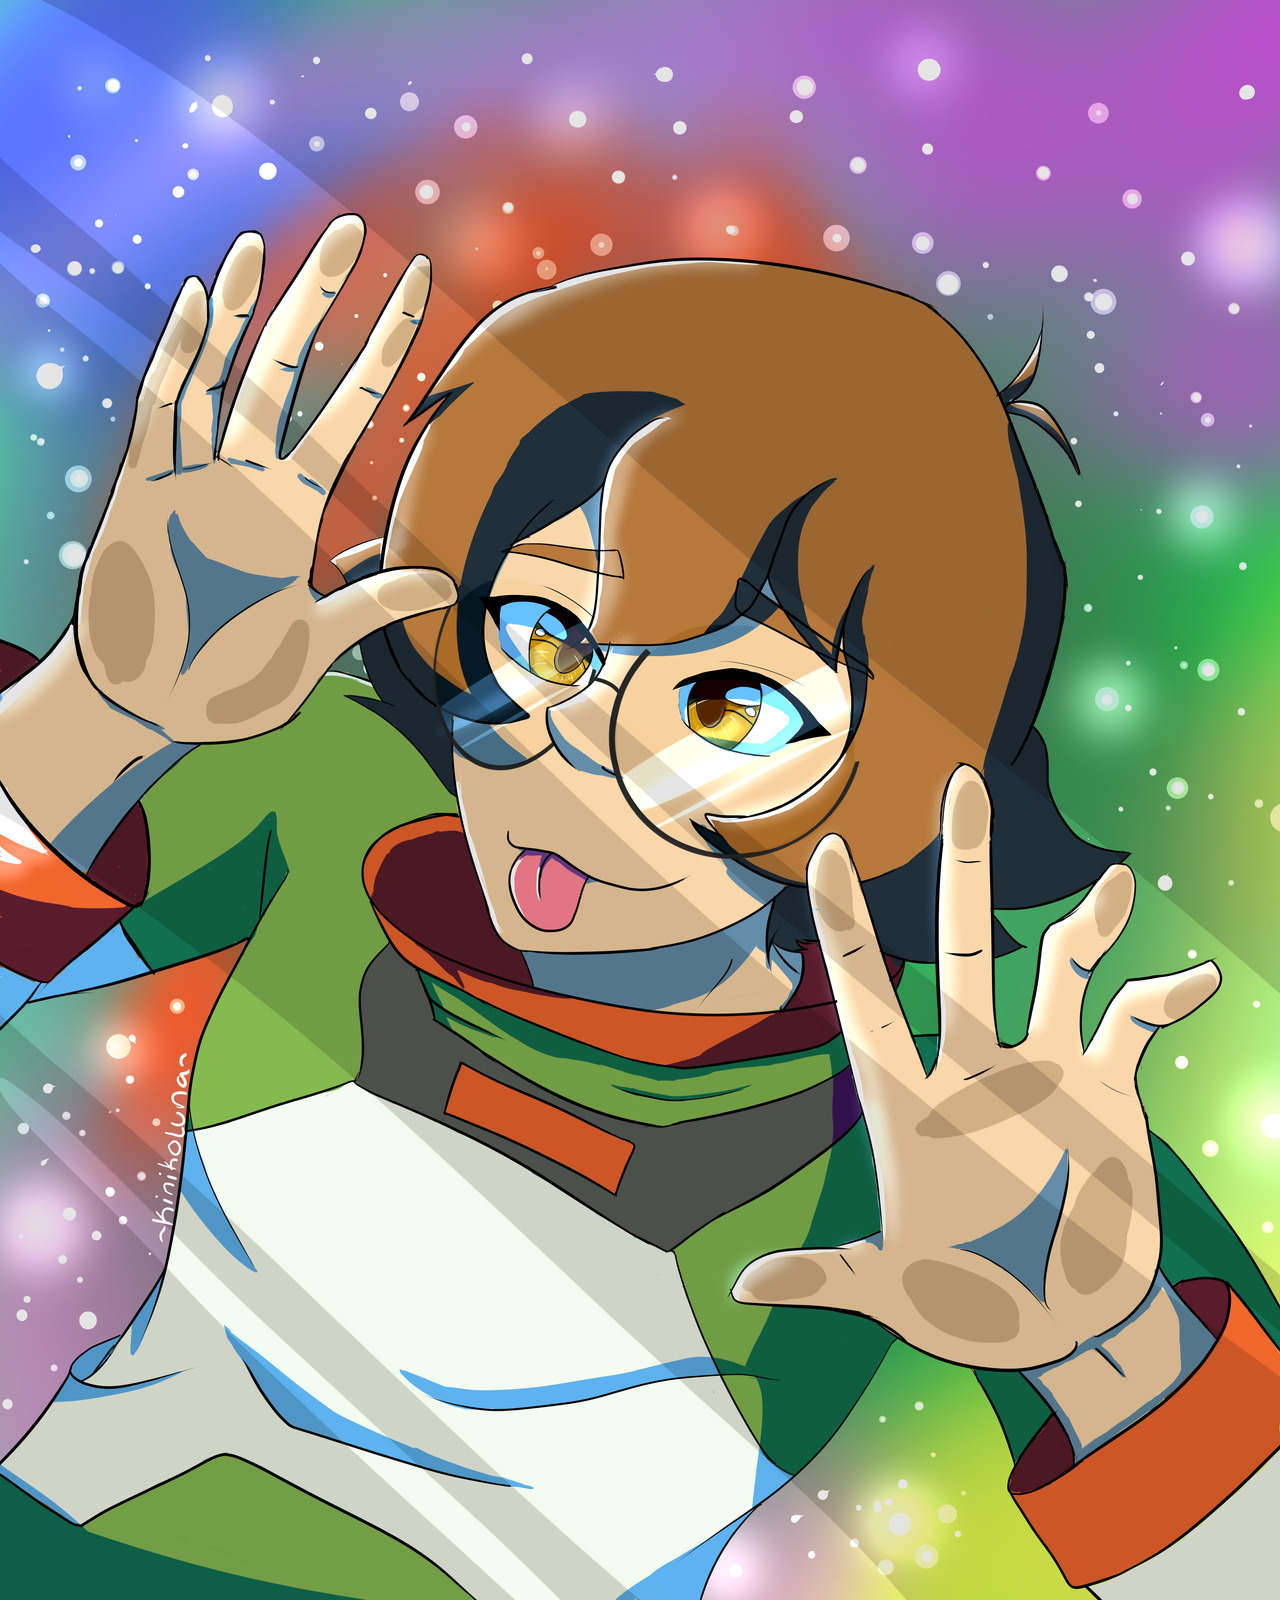 Voltron Pidge Wallpaper Posted By Michelle Johnson